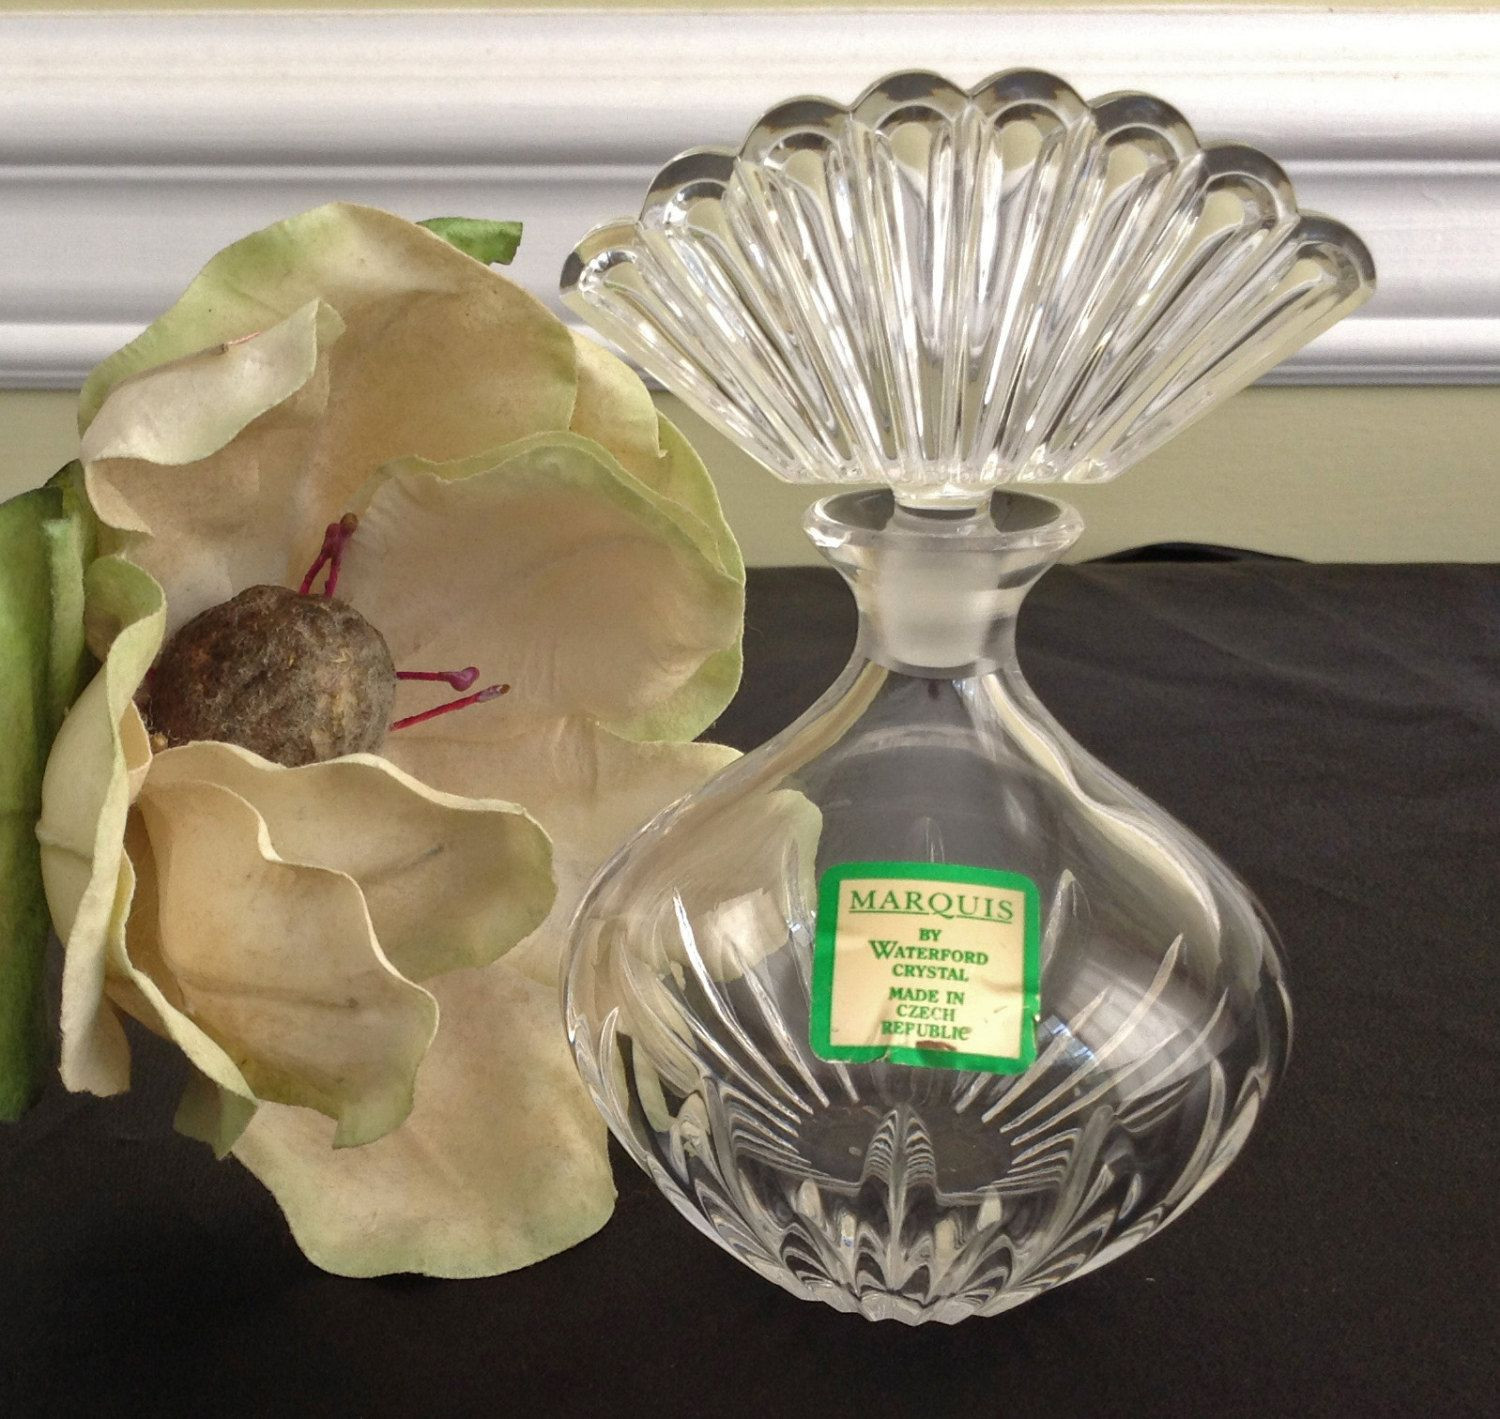 waterford lismore 8 crystal vase of marquis perfume bottle marquis by waterford mint condition for marquis perfume bottle marquis by waterford mint condition crystal perfume bottle by